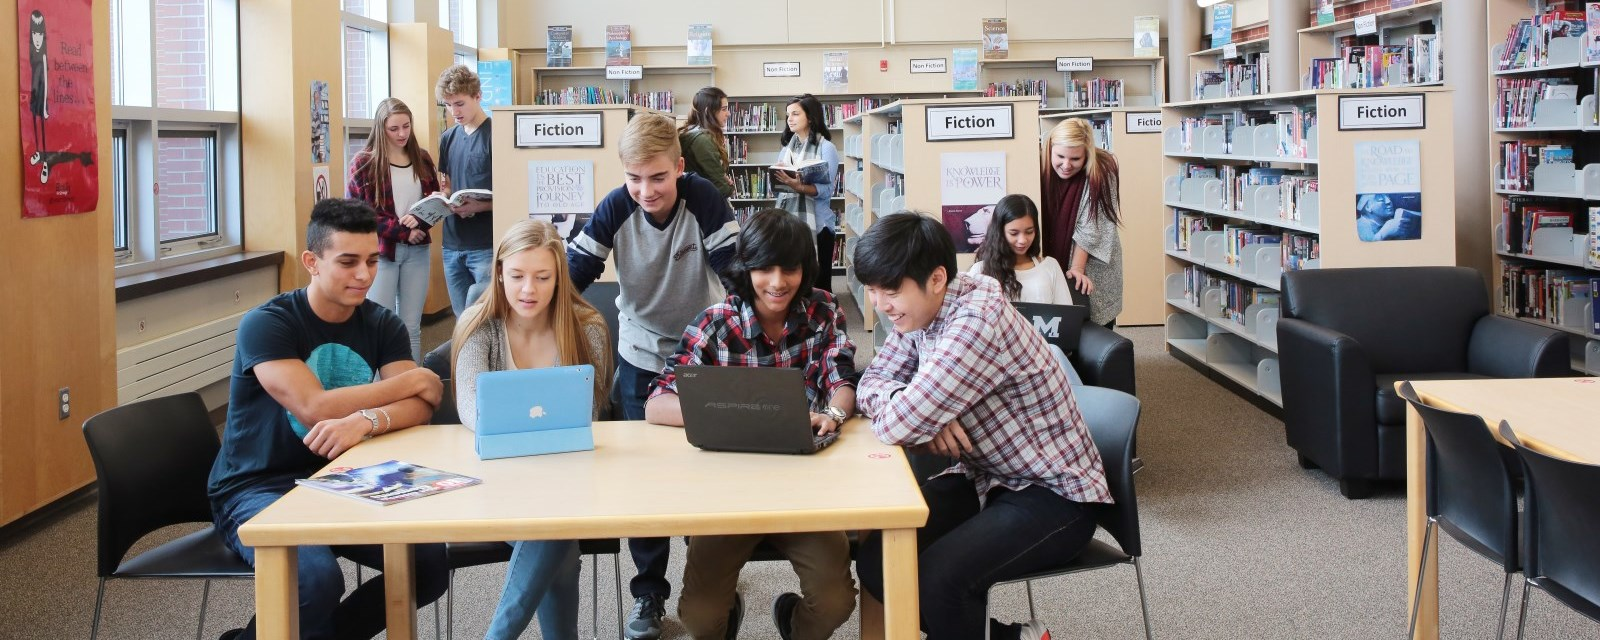 Myblueprint career planner tvdsb students in a library using mobile devices malvernweather Choice Image